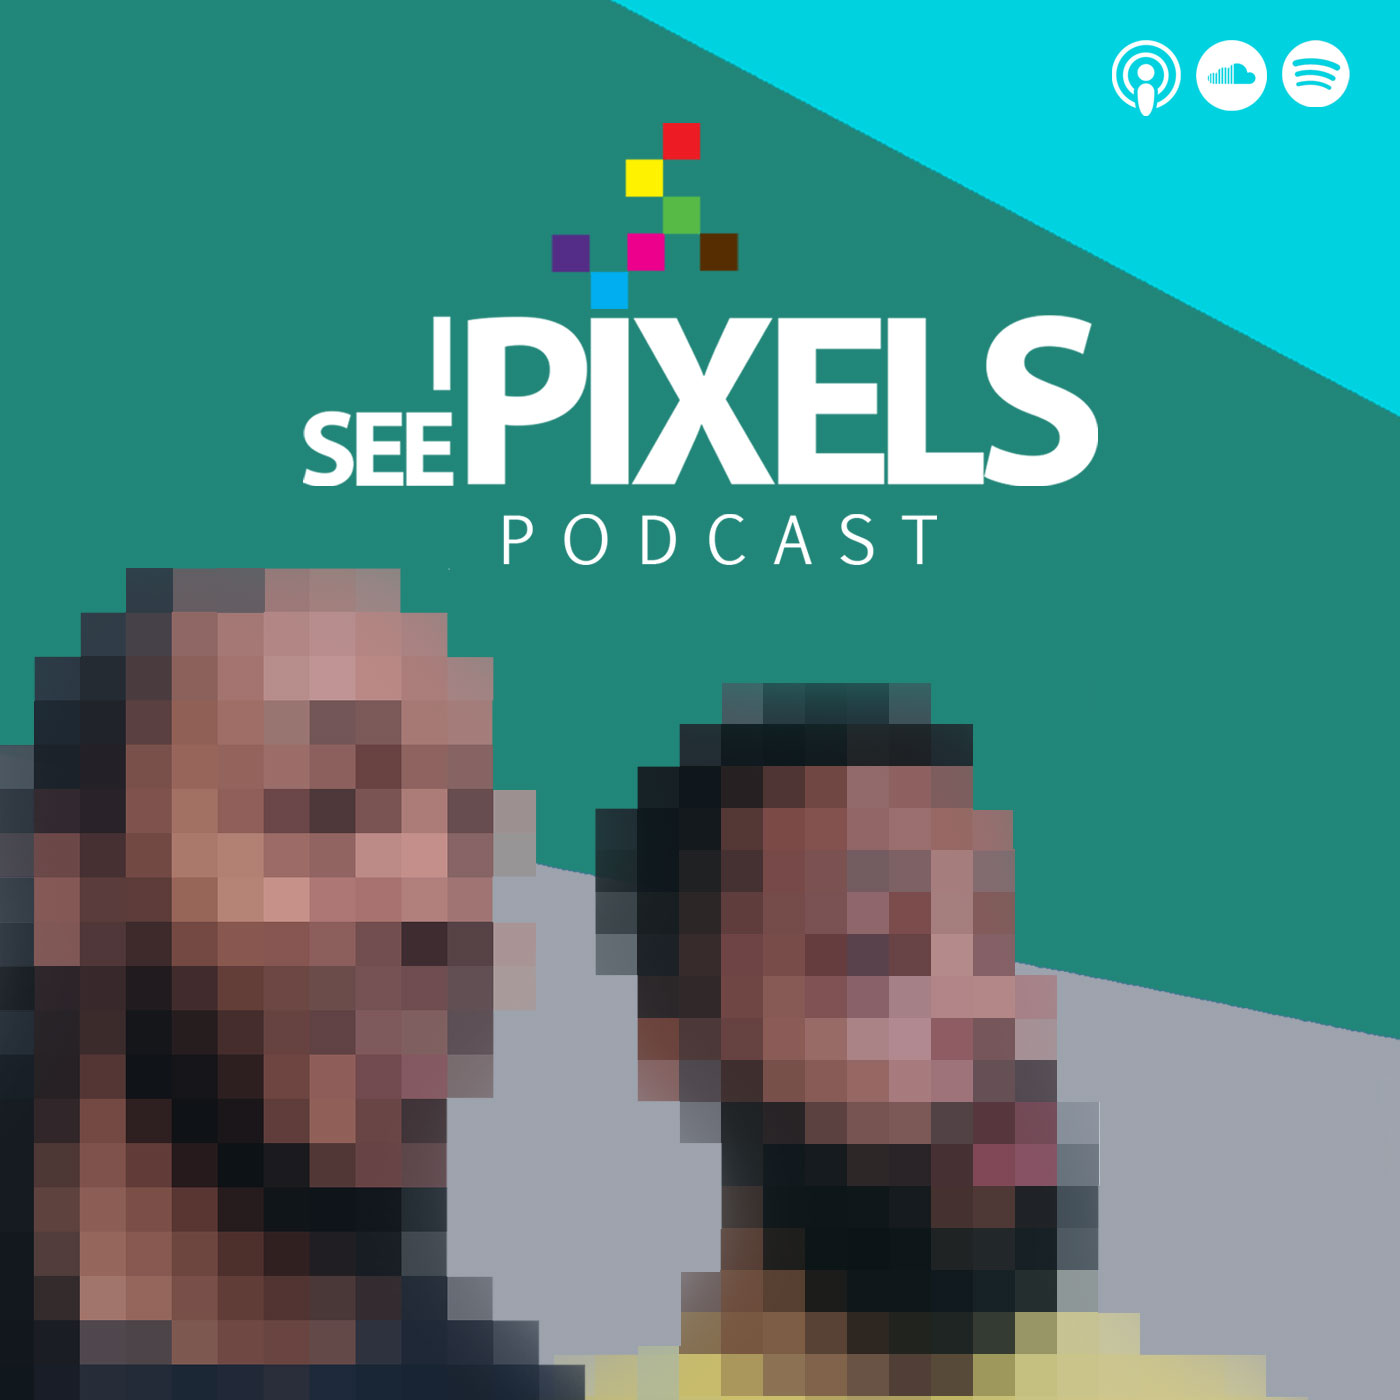 I See Pixels Graphic Design Podcast